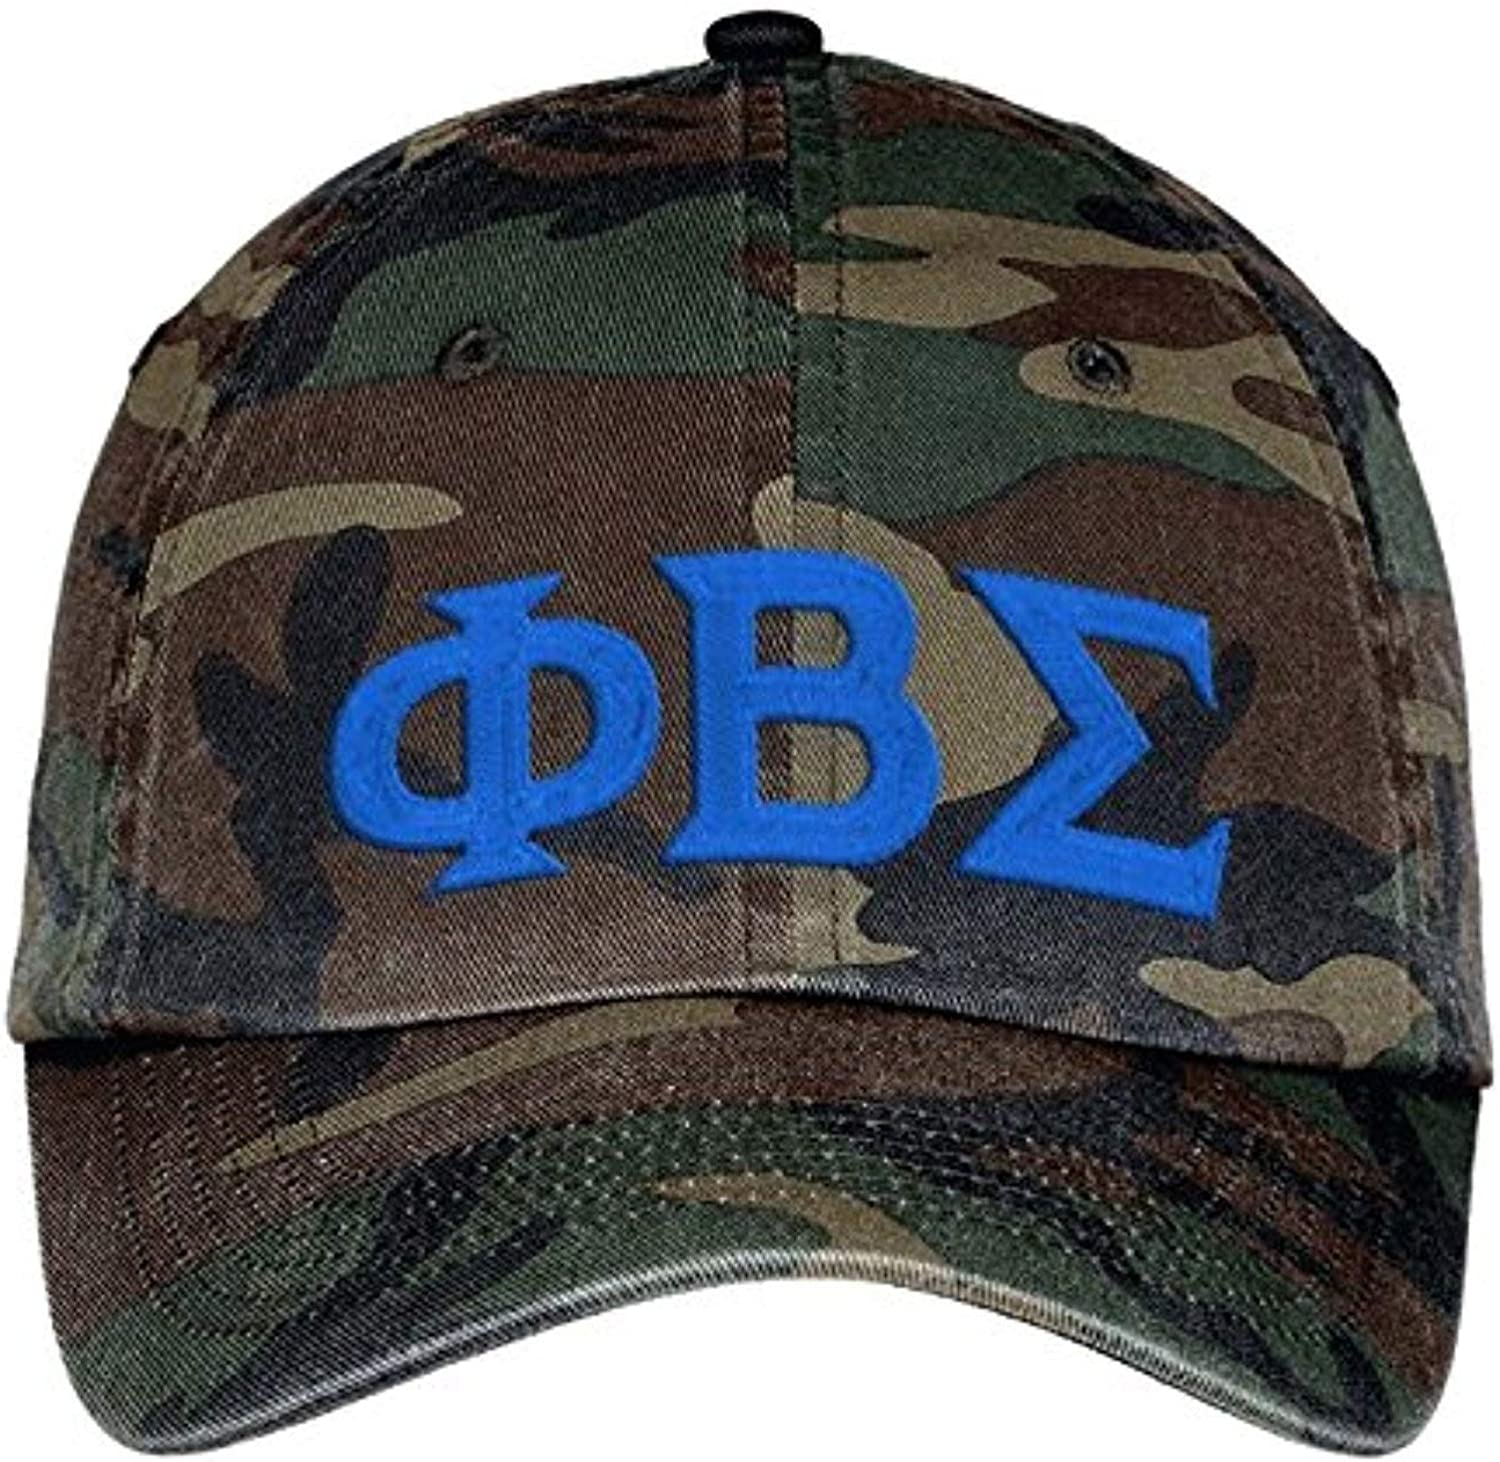 Sigma Outstanding Tau Gamma 5 ☆ very popular Camouflage Hat Lettered